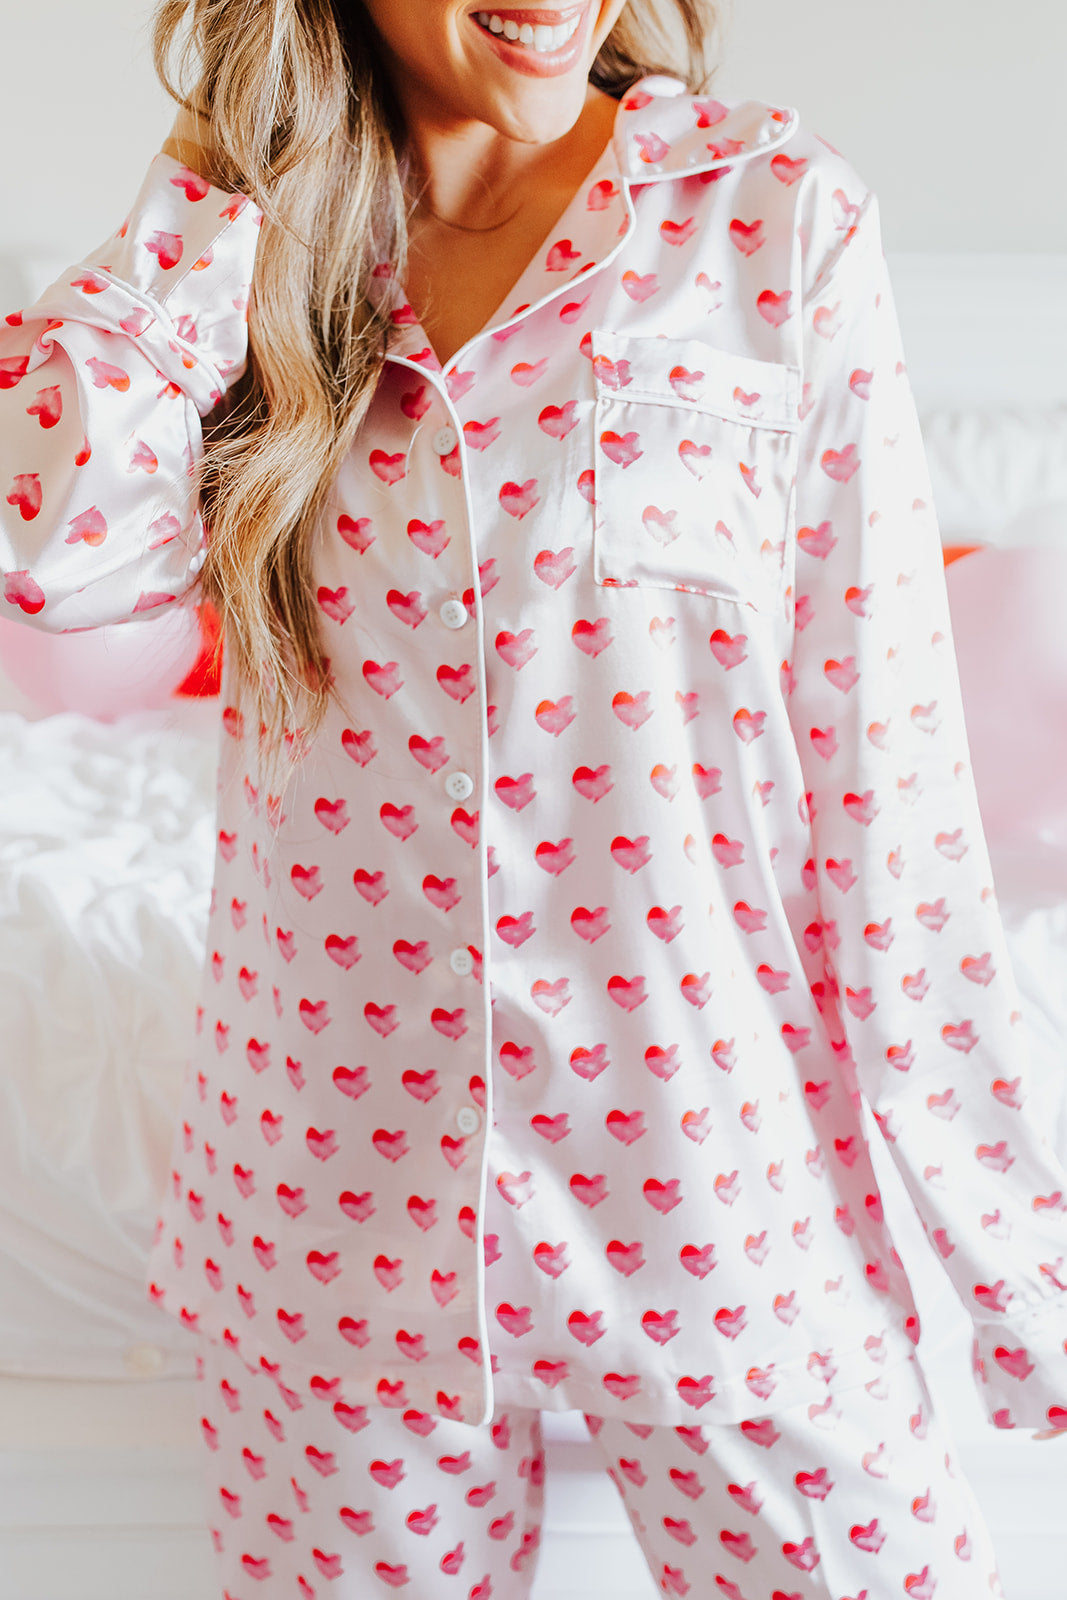 THE PINK DESERT HEART PAJAMAS IN PINK